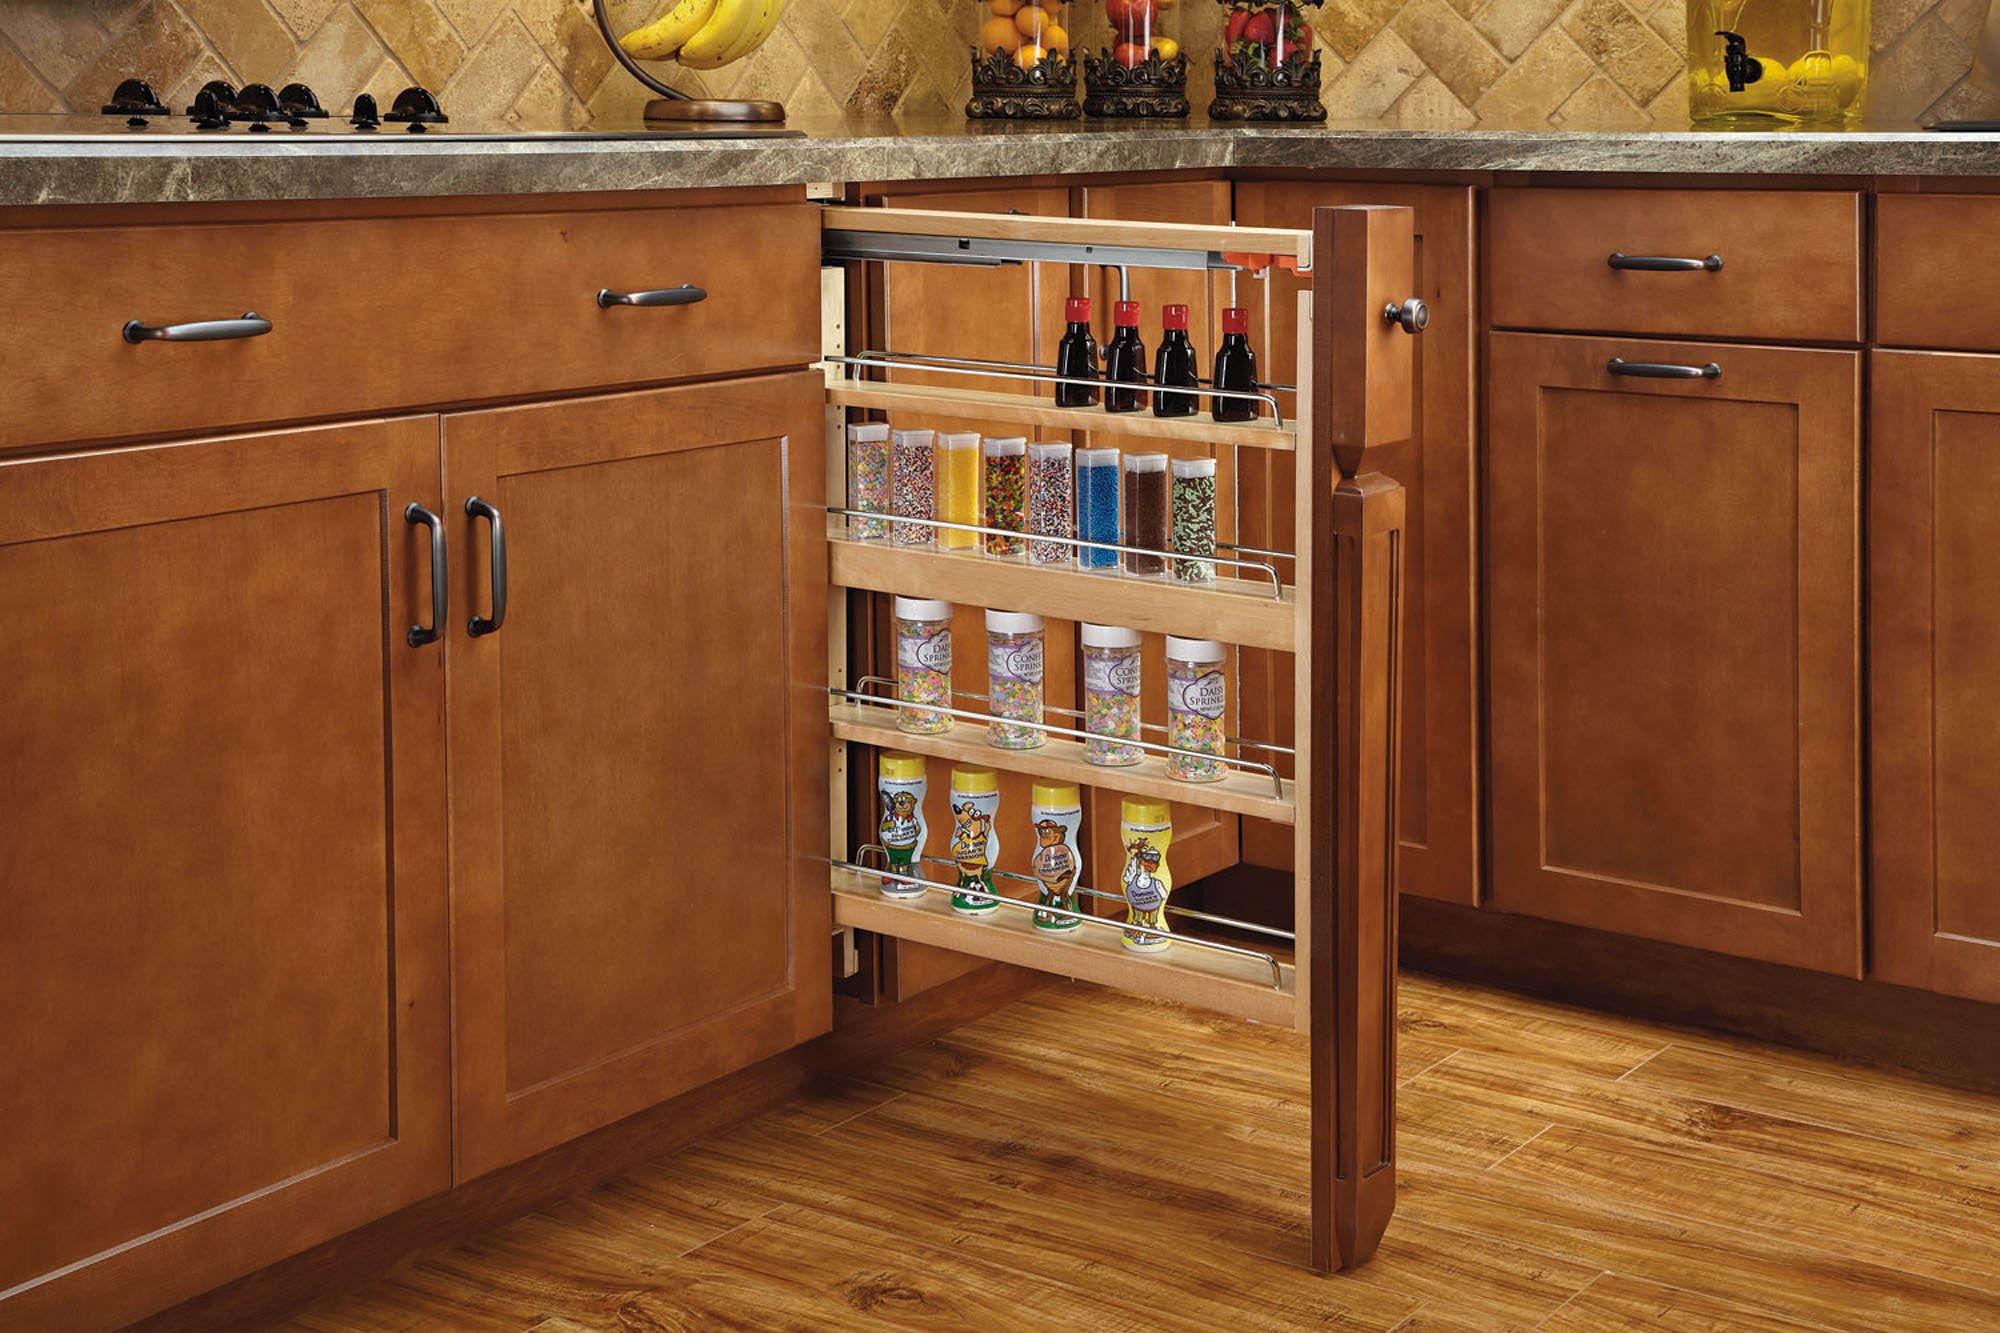 Rev-A-Shelf 432-BFSC-6C Pull-Out Between Cabinet Base Filler with Soft-Close Slides, 6 Inch , Natural by Rev-A-Shelf